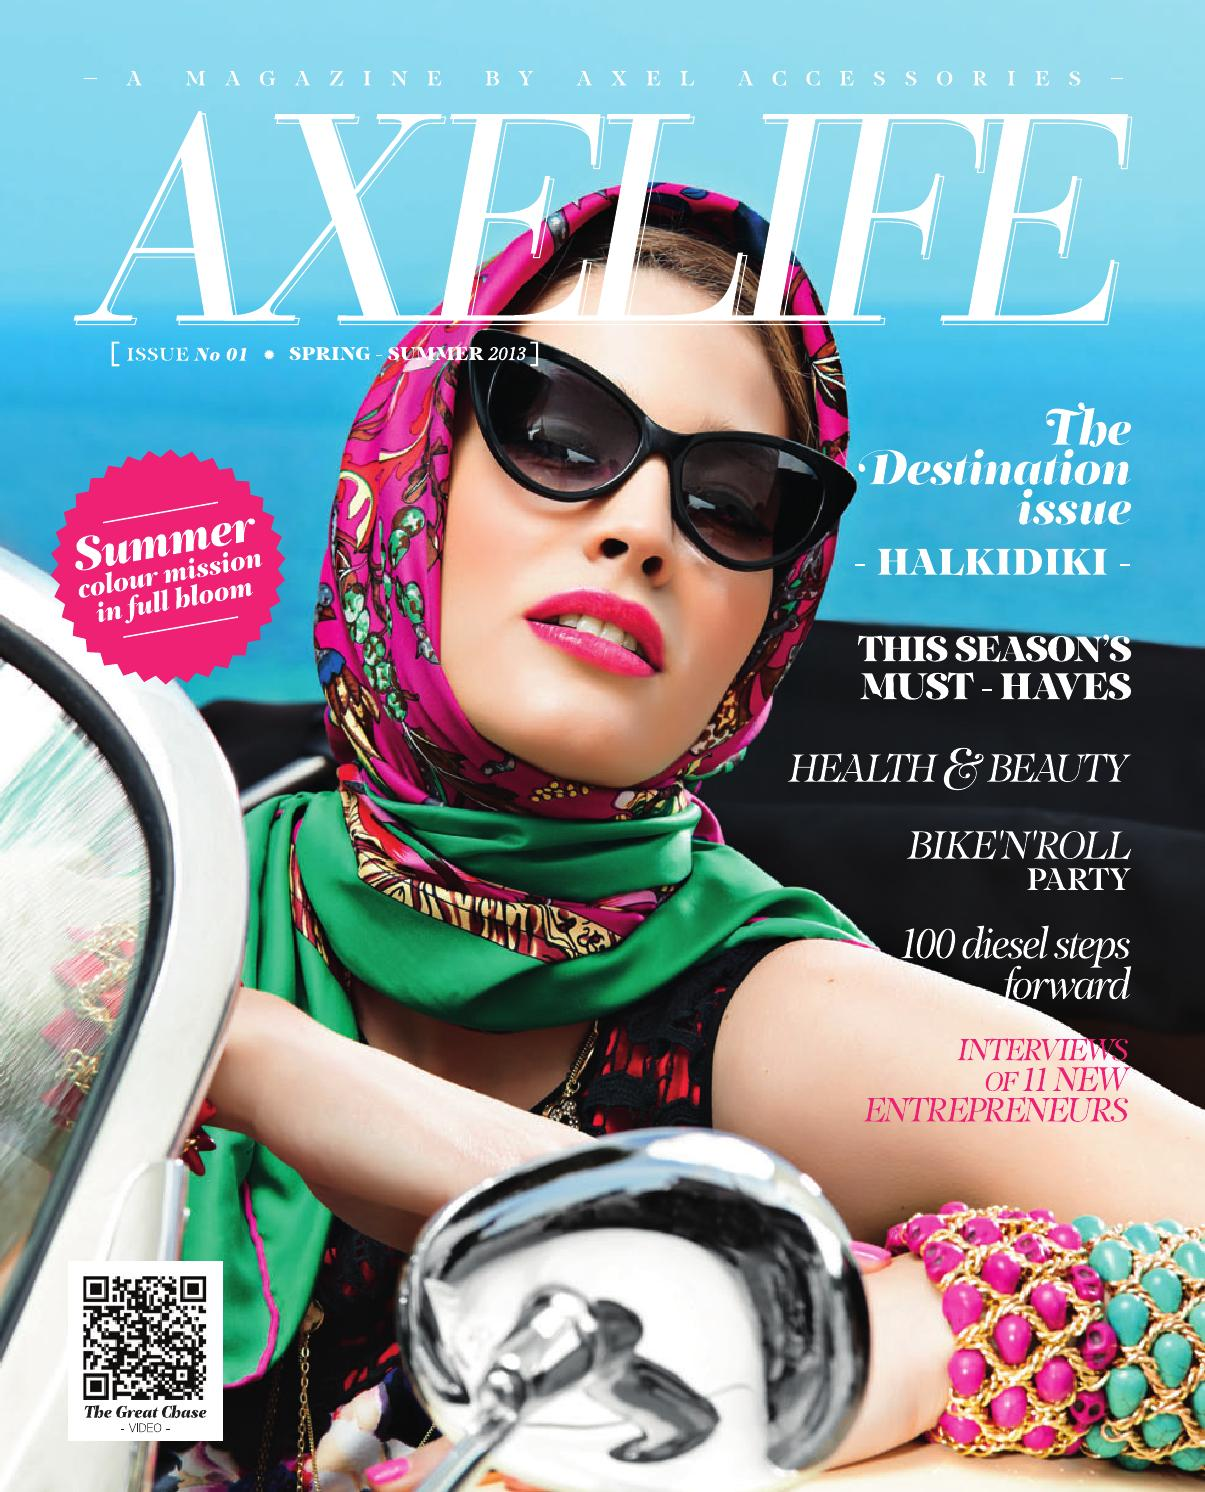 261df2d8ce AXELIFE 01 by axel accessories - issuu